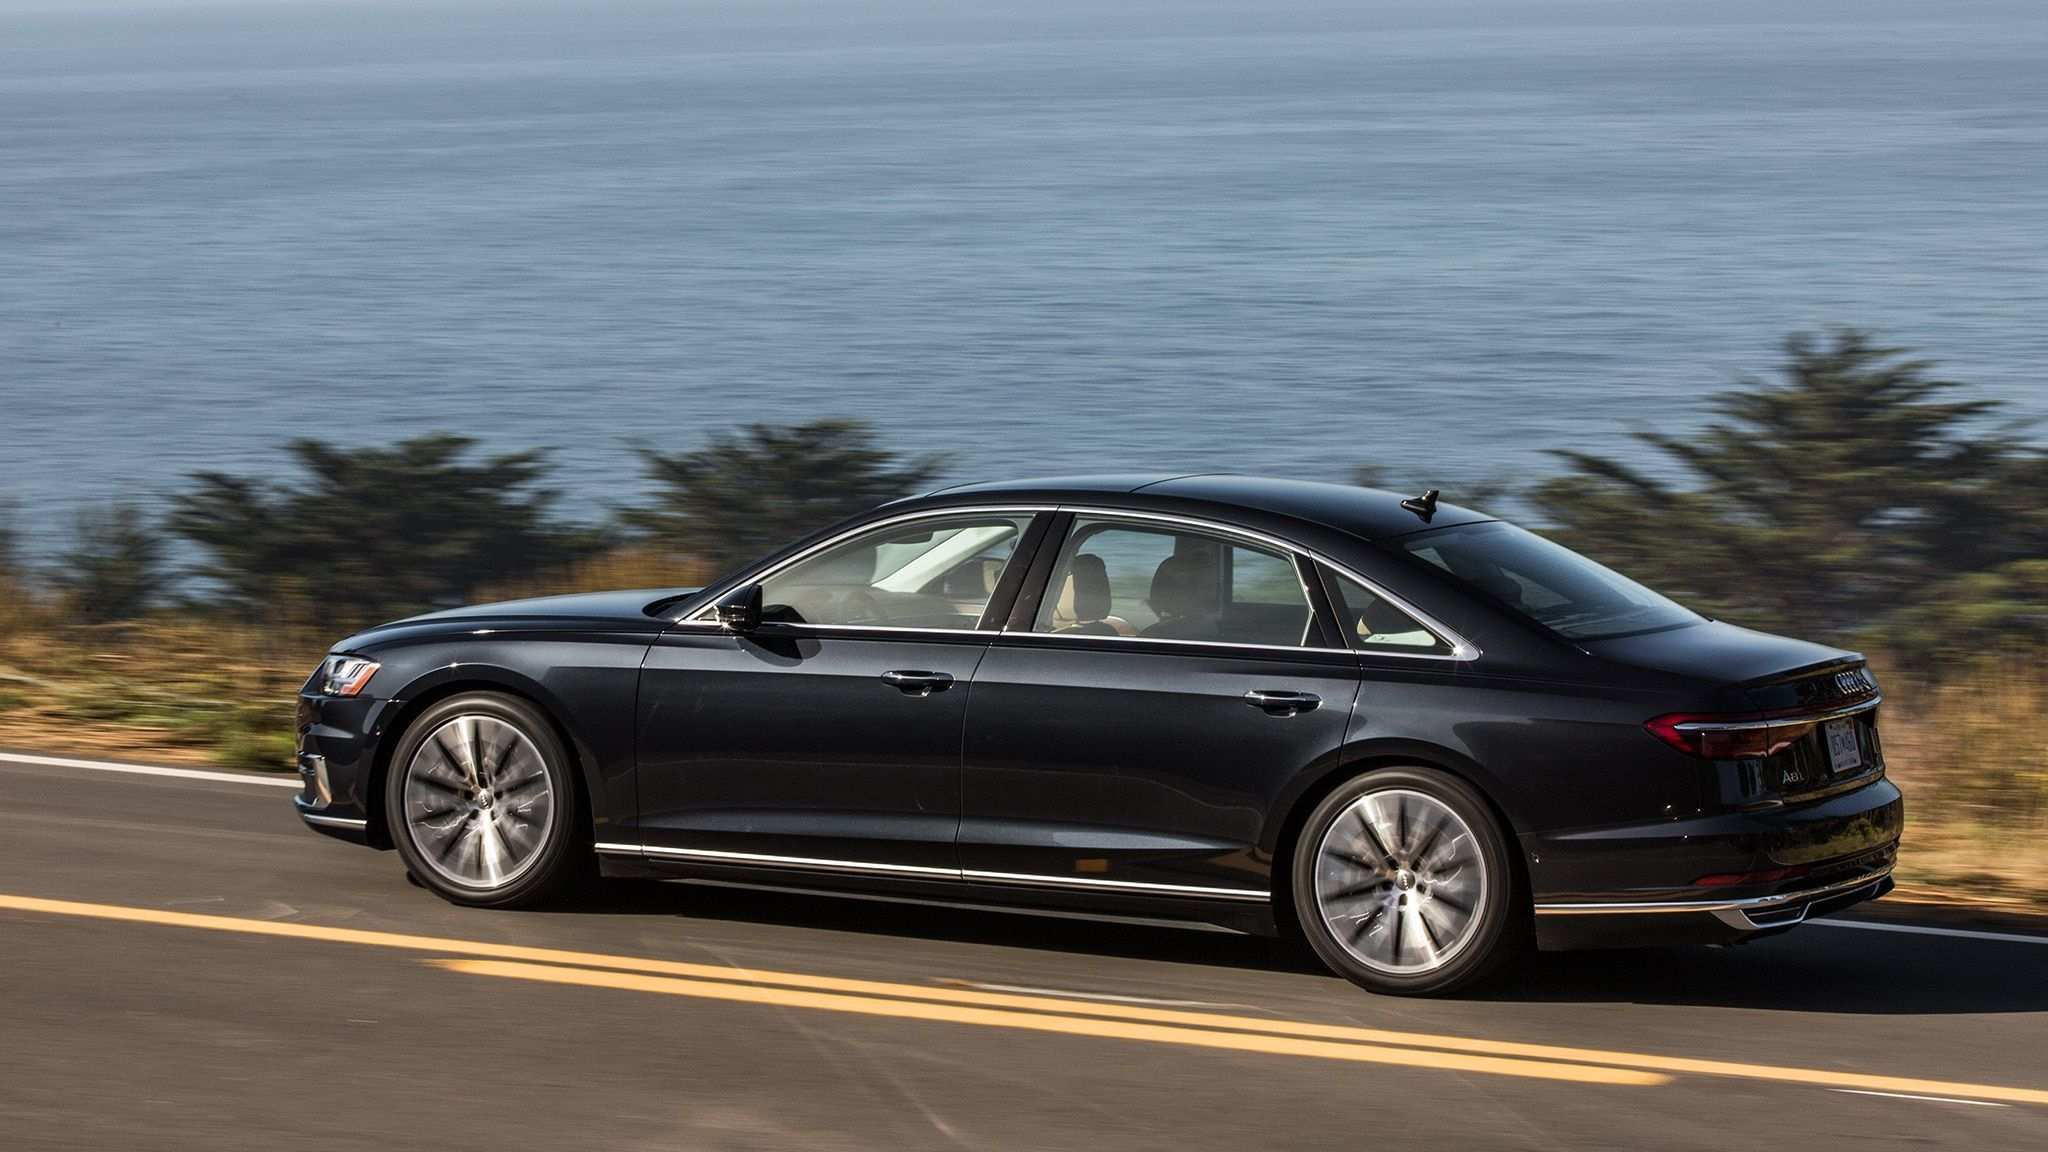 84 Great 2020 Audi A8 L In Usa Overview by 2020 Audi A8 L In Usa